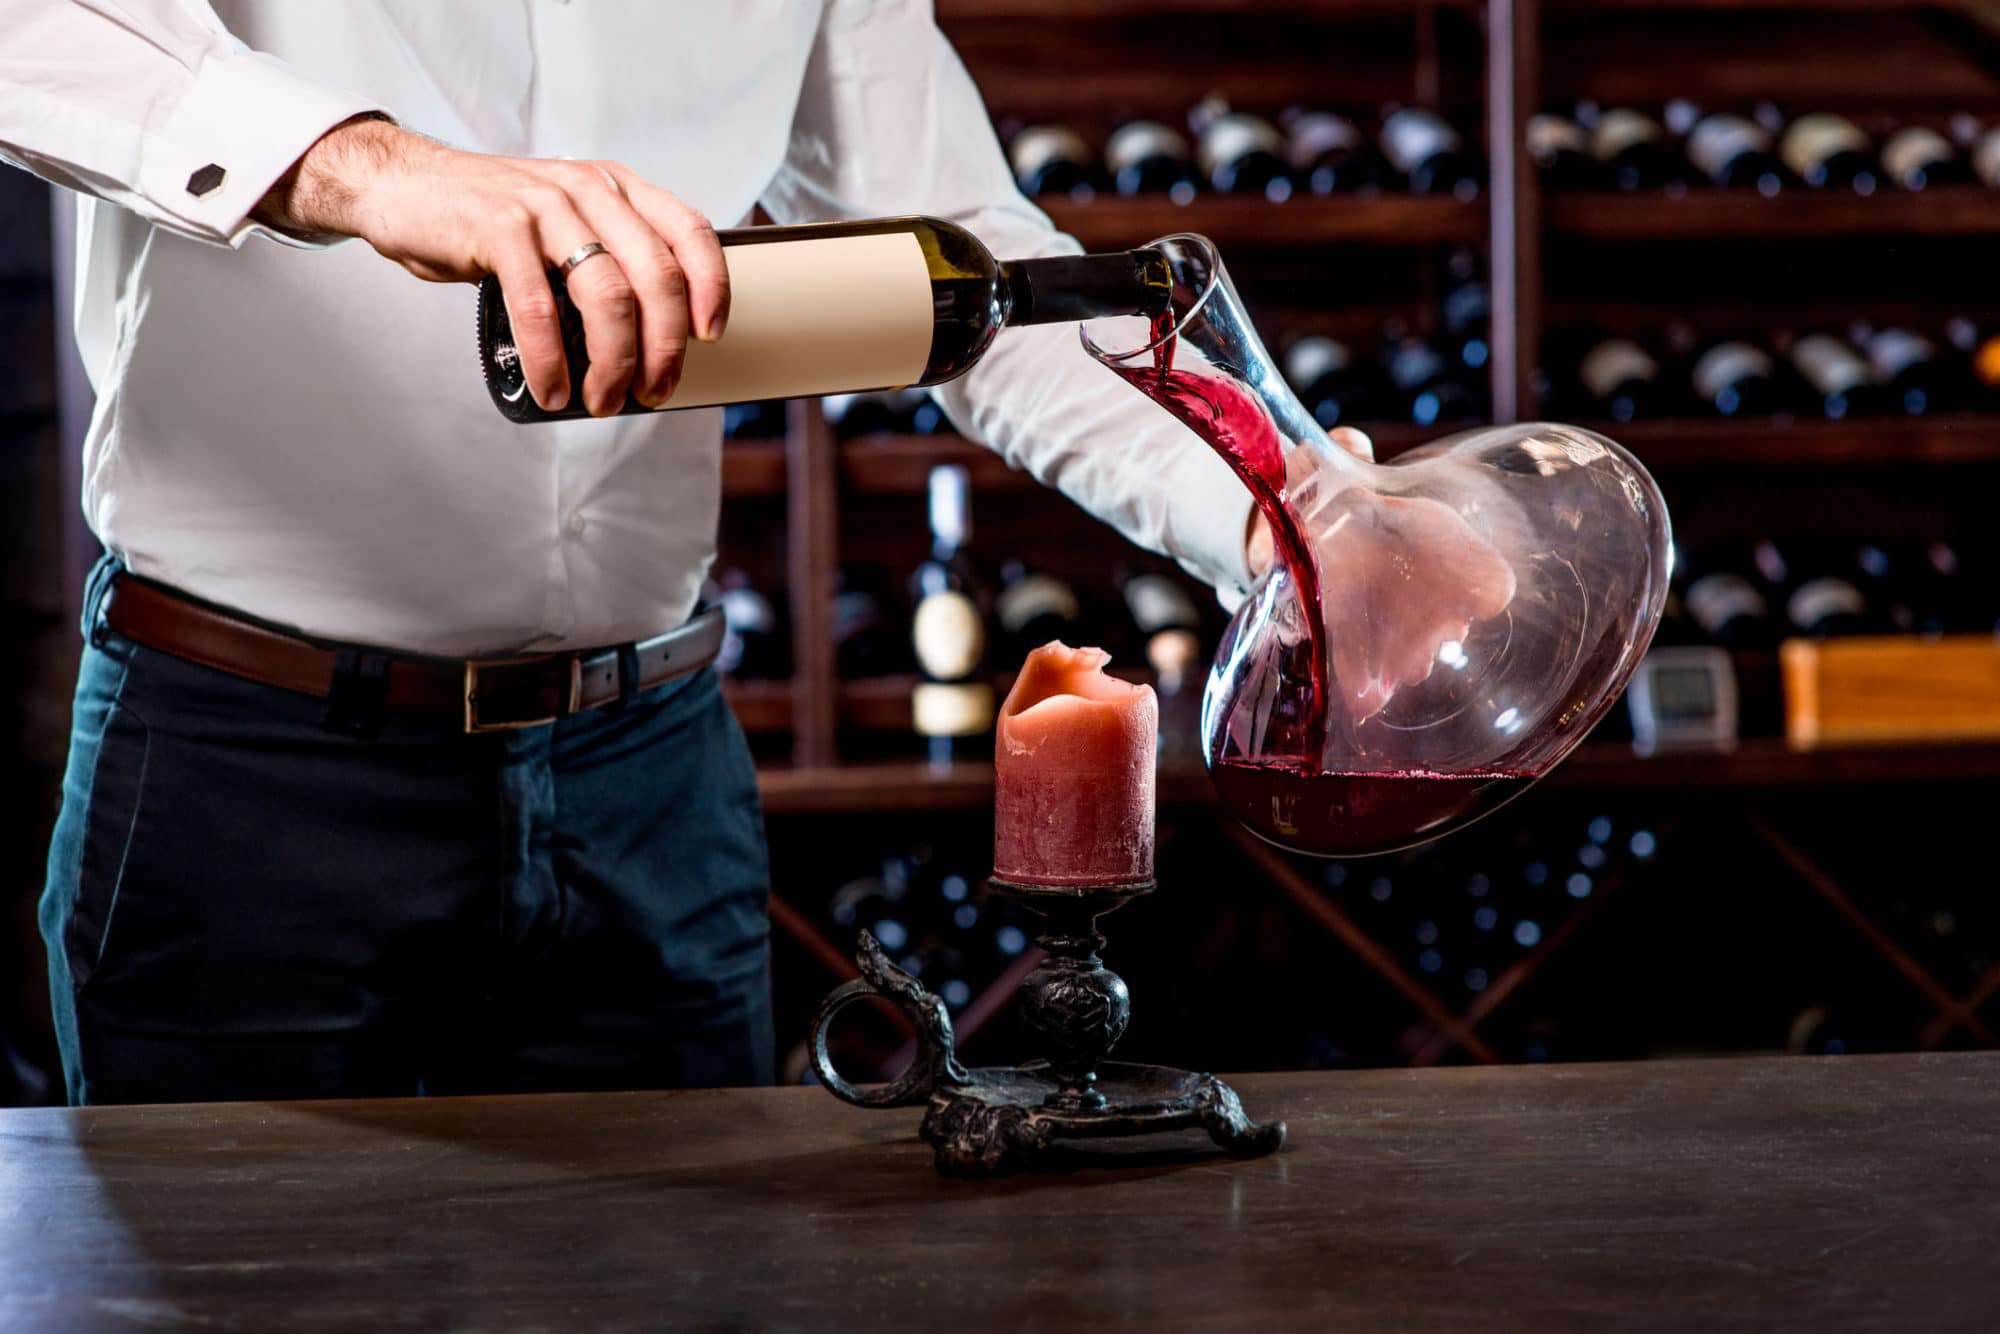 Sommelier pouring wine to the decanter in the wine cellar - wine decanters